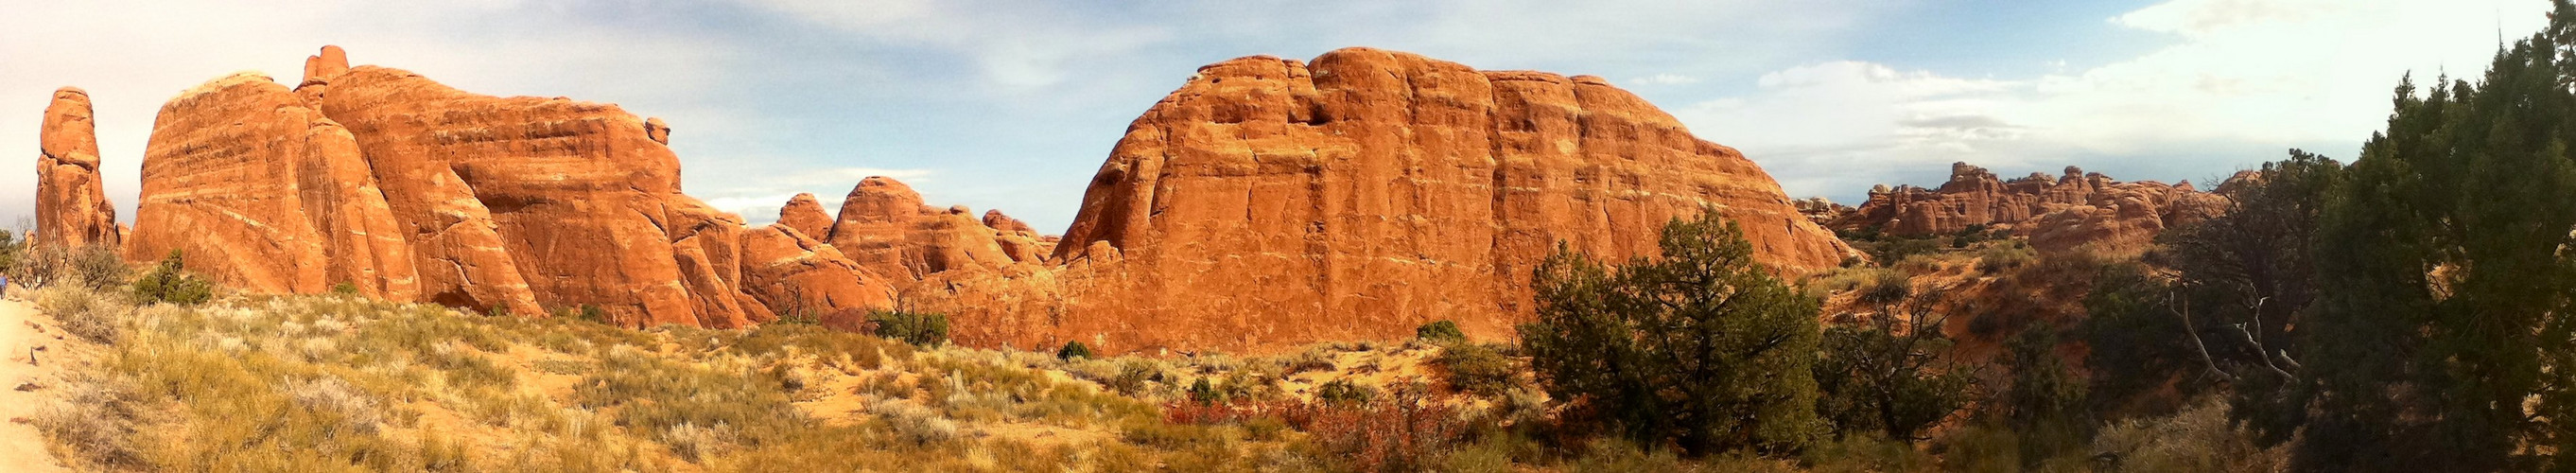 Arches National Park - Panorama